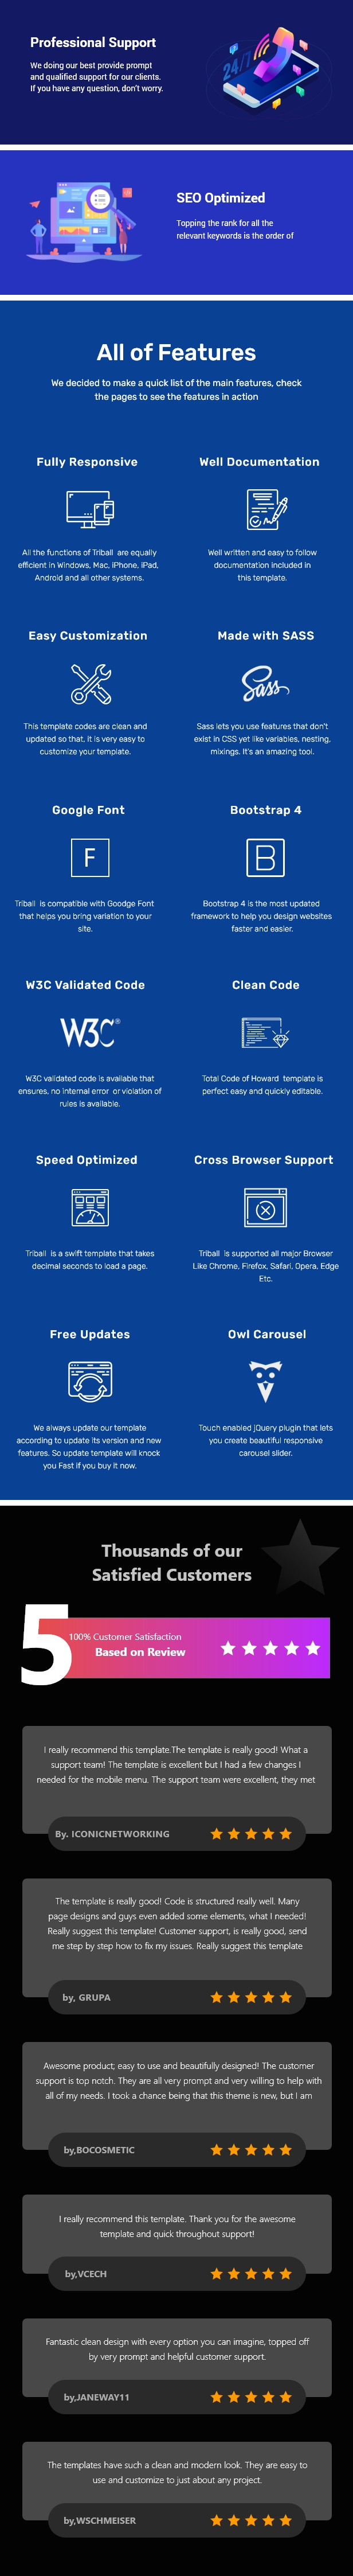 Triball - Corporate Agency Bootstrap 5 Template - 2